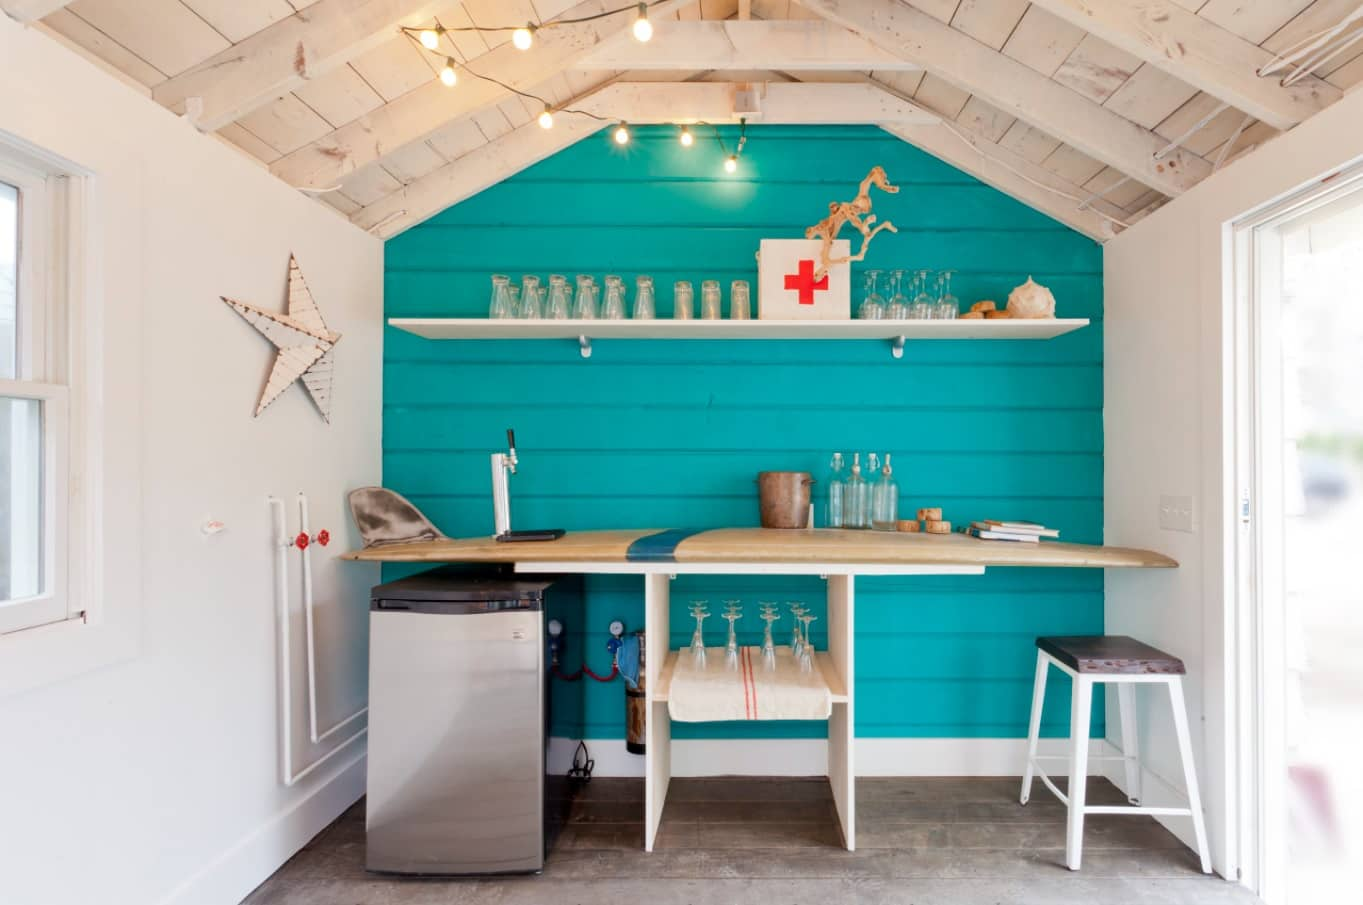 Alternative Ways to Use a Garden Shed. Patio bar at the backyard with turquoise accent wall